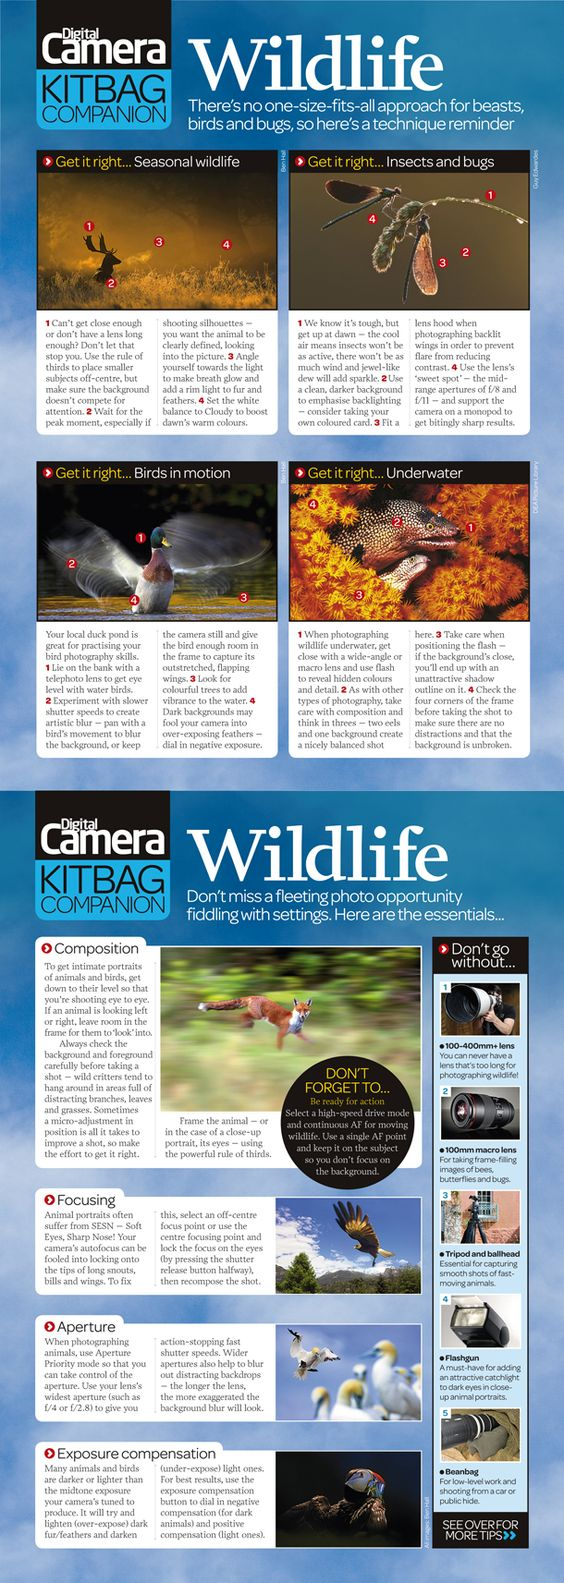 Free wildlife photography cheat sheet: tips on composing, exposing and how to shoot some of the more popular subjects